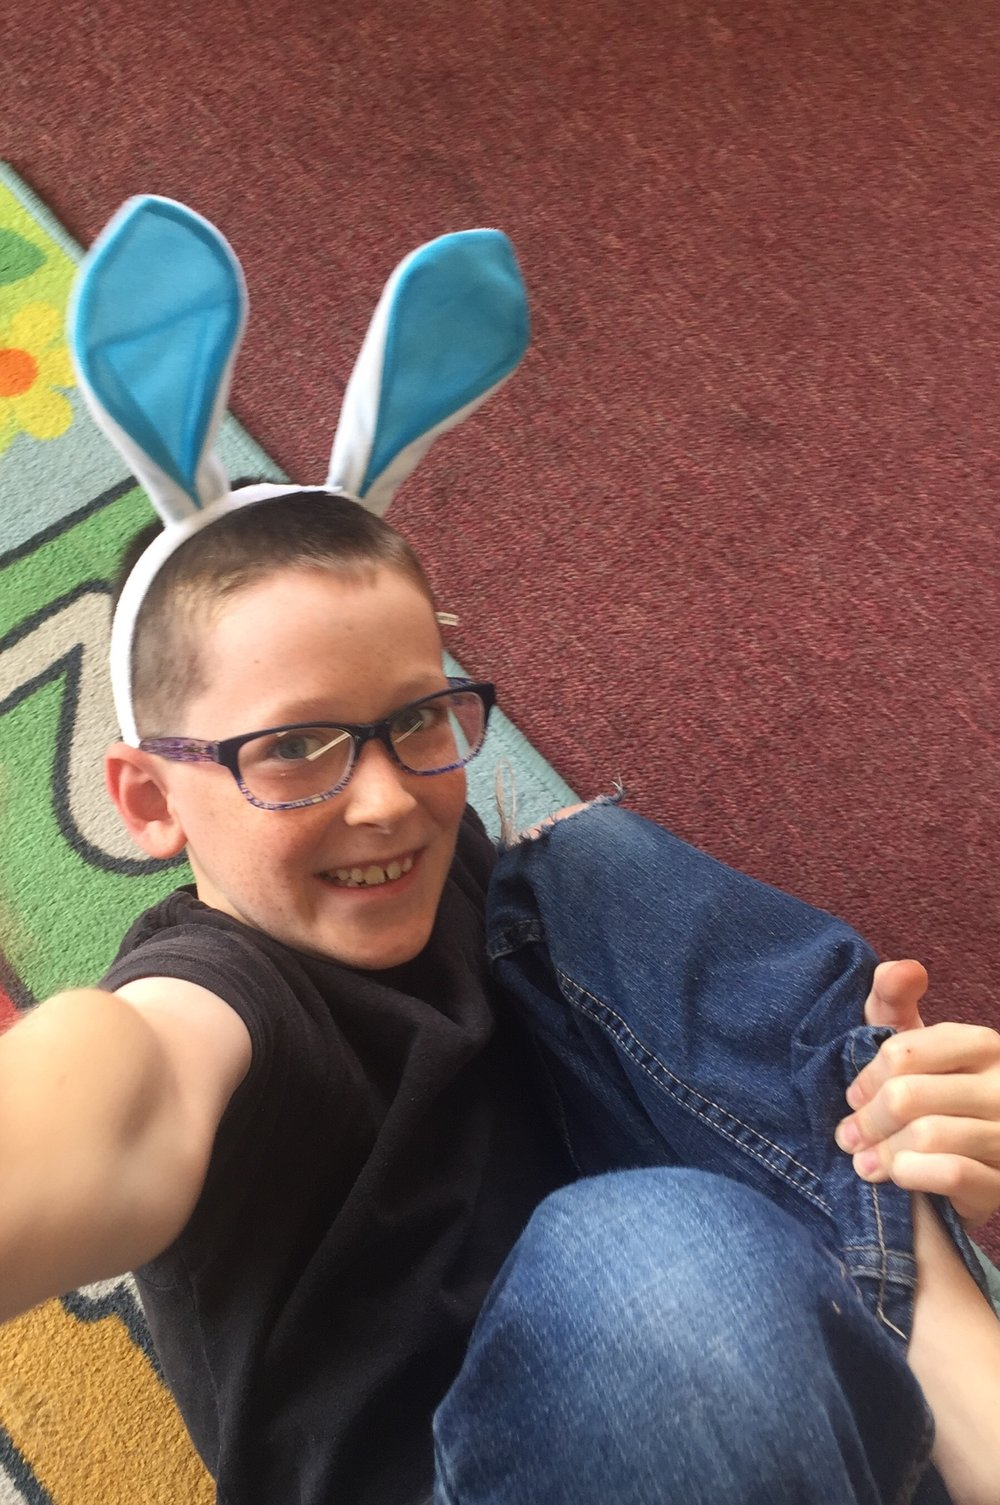 Titus emjoys pretending to be a bunny on Mammal day